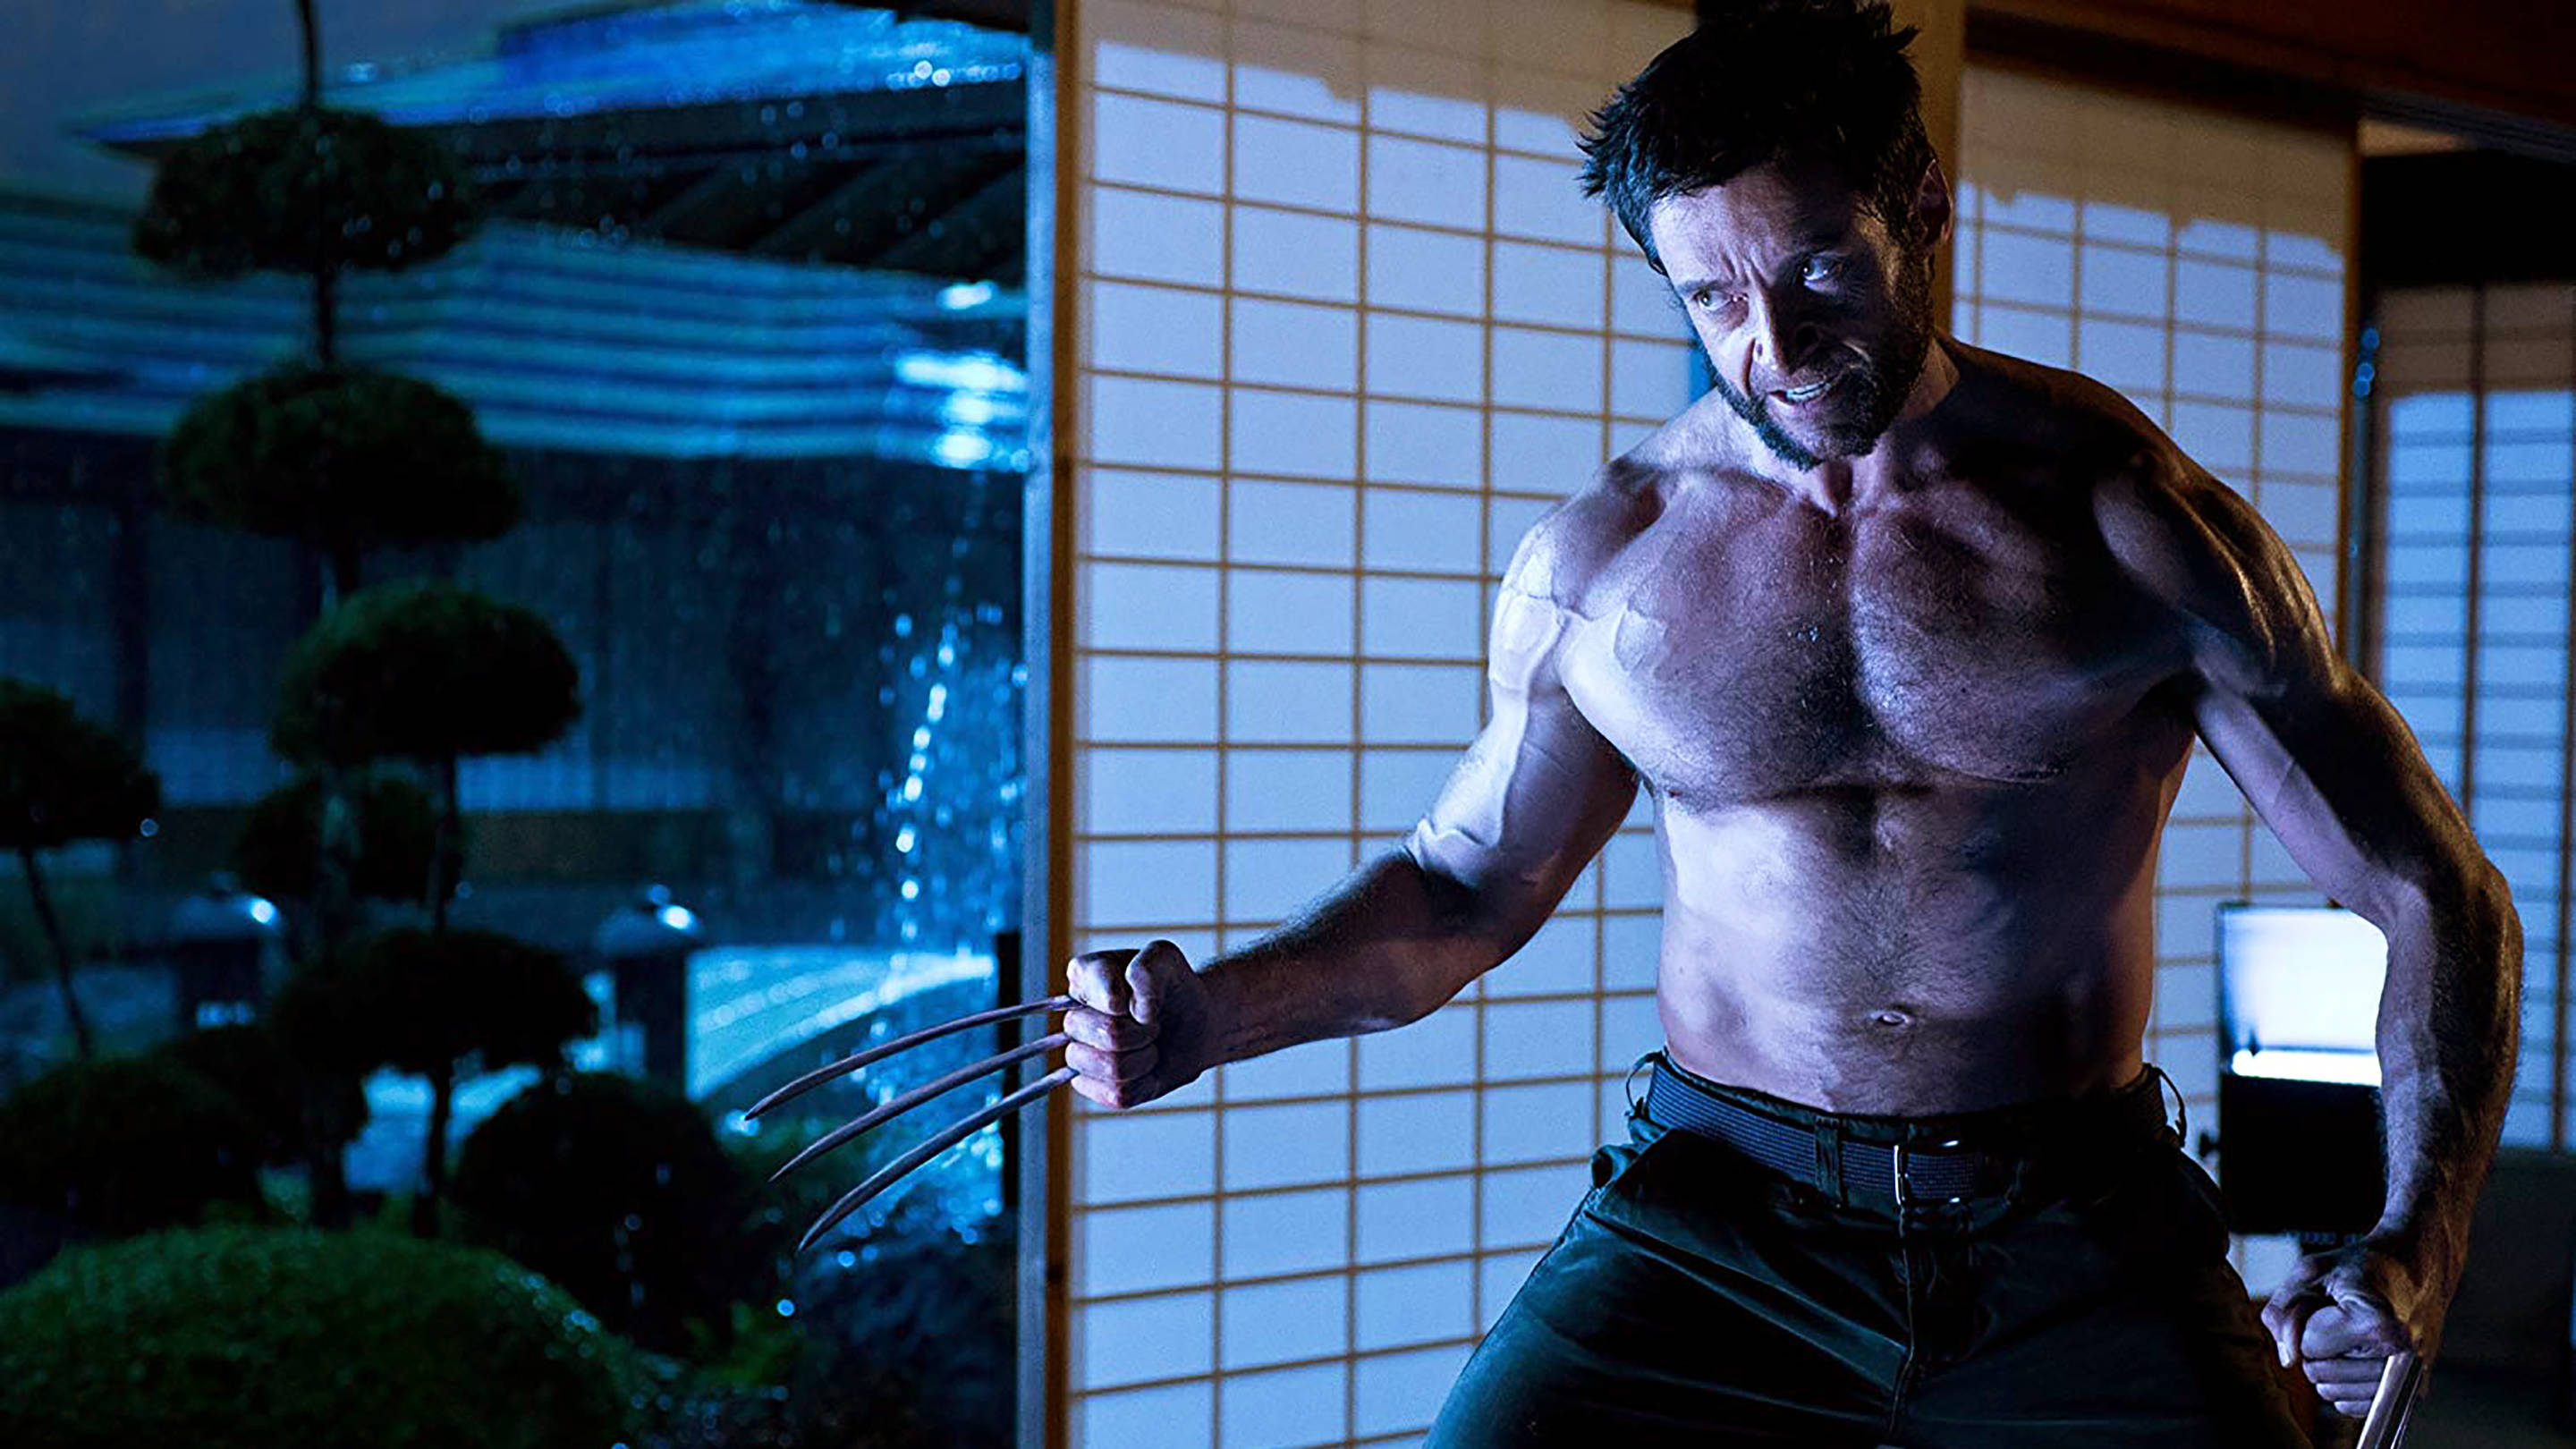 Hugh Jackman as X-Men's Wolverine